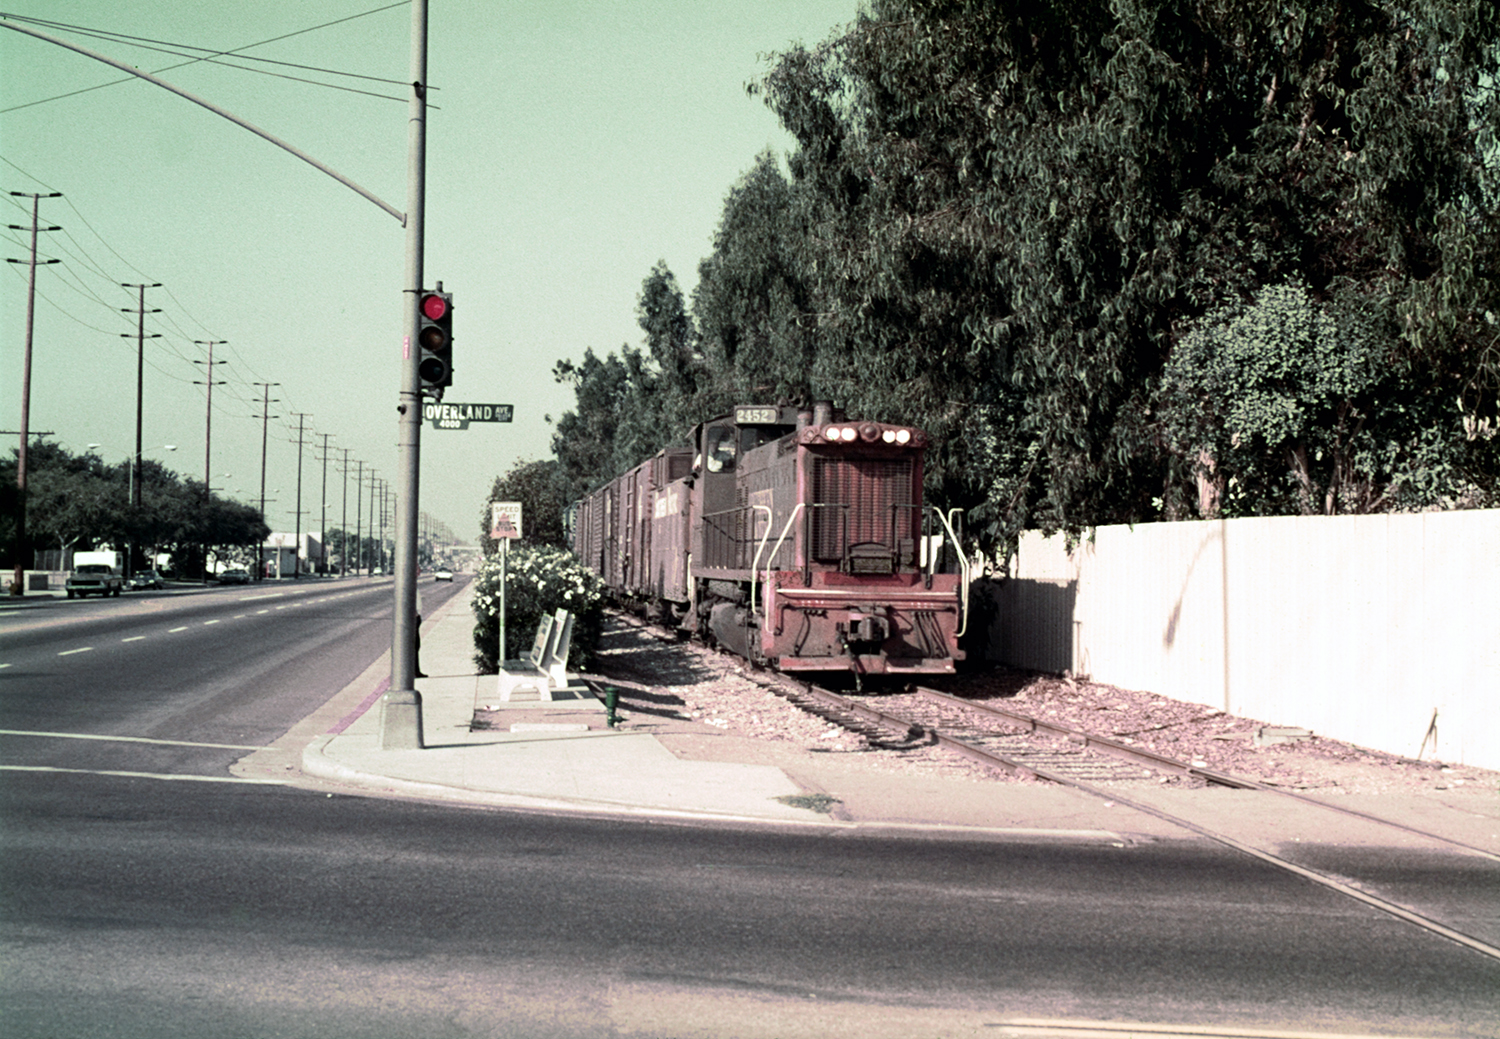 Southern Pacific 2452 at Overland in Culver City - Pacific